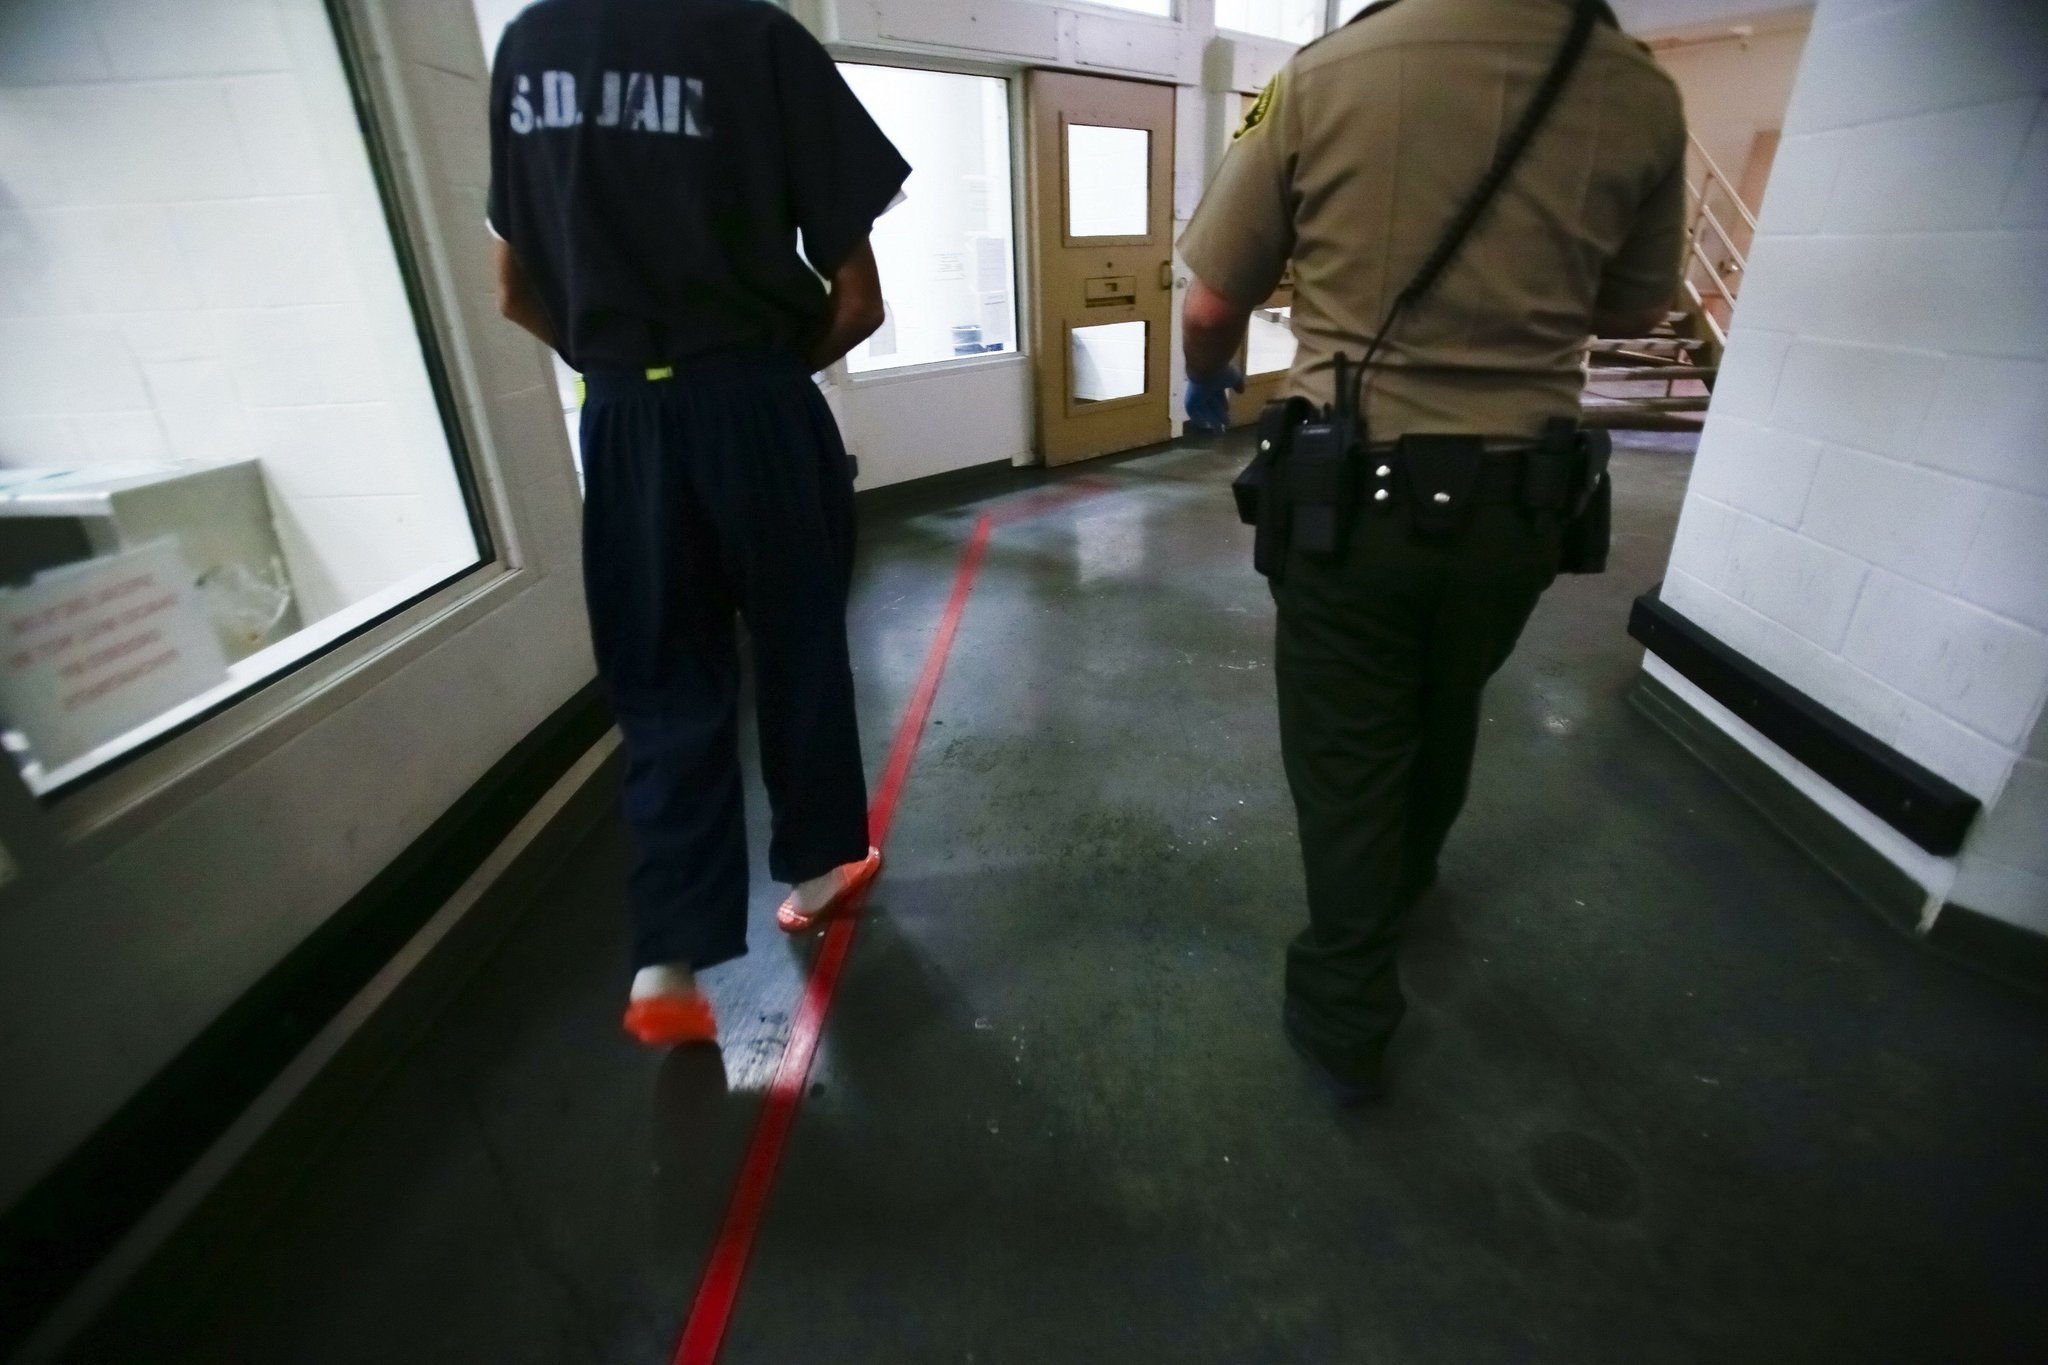 47 Ended Early Release From Jail The San Diego Union Tribune